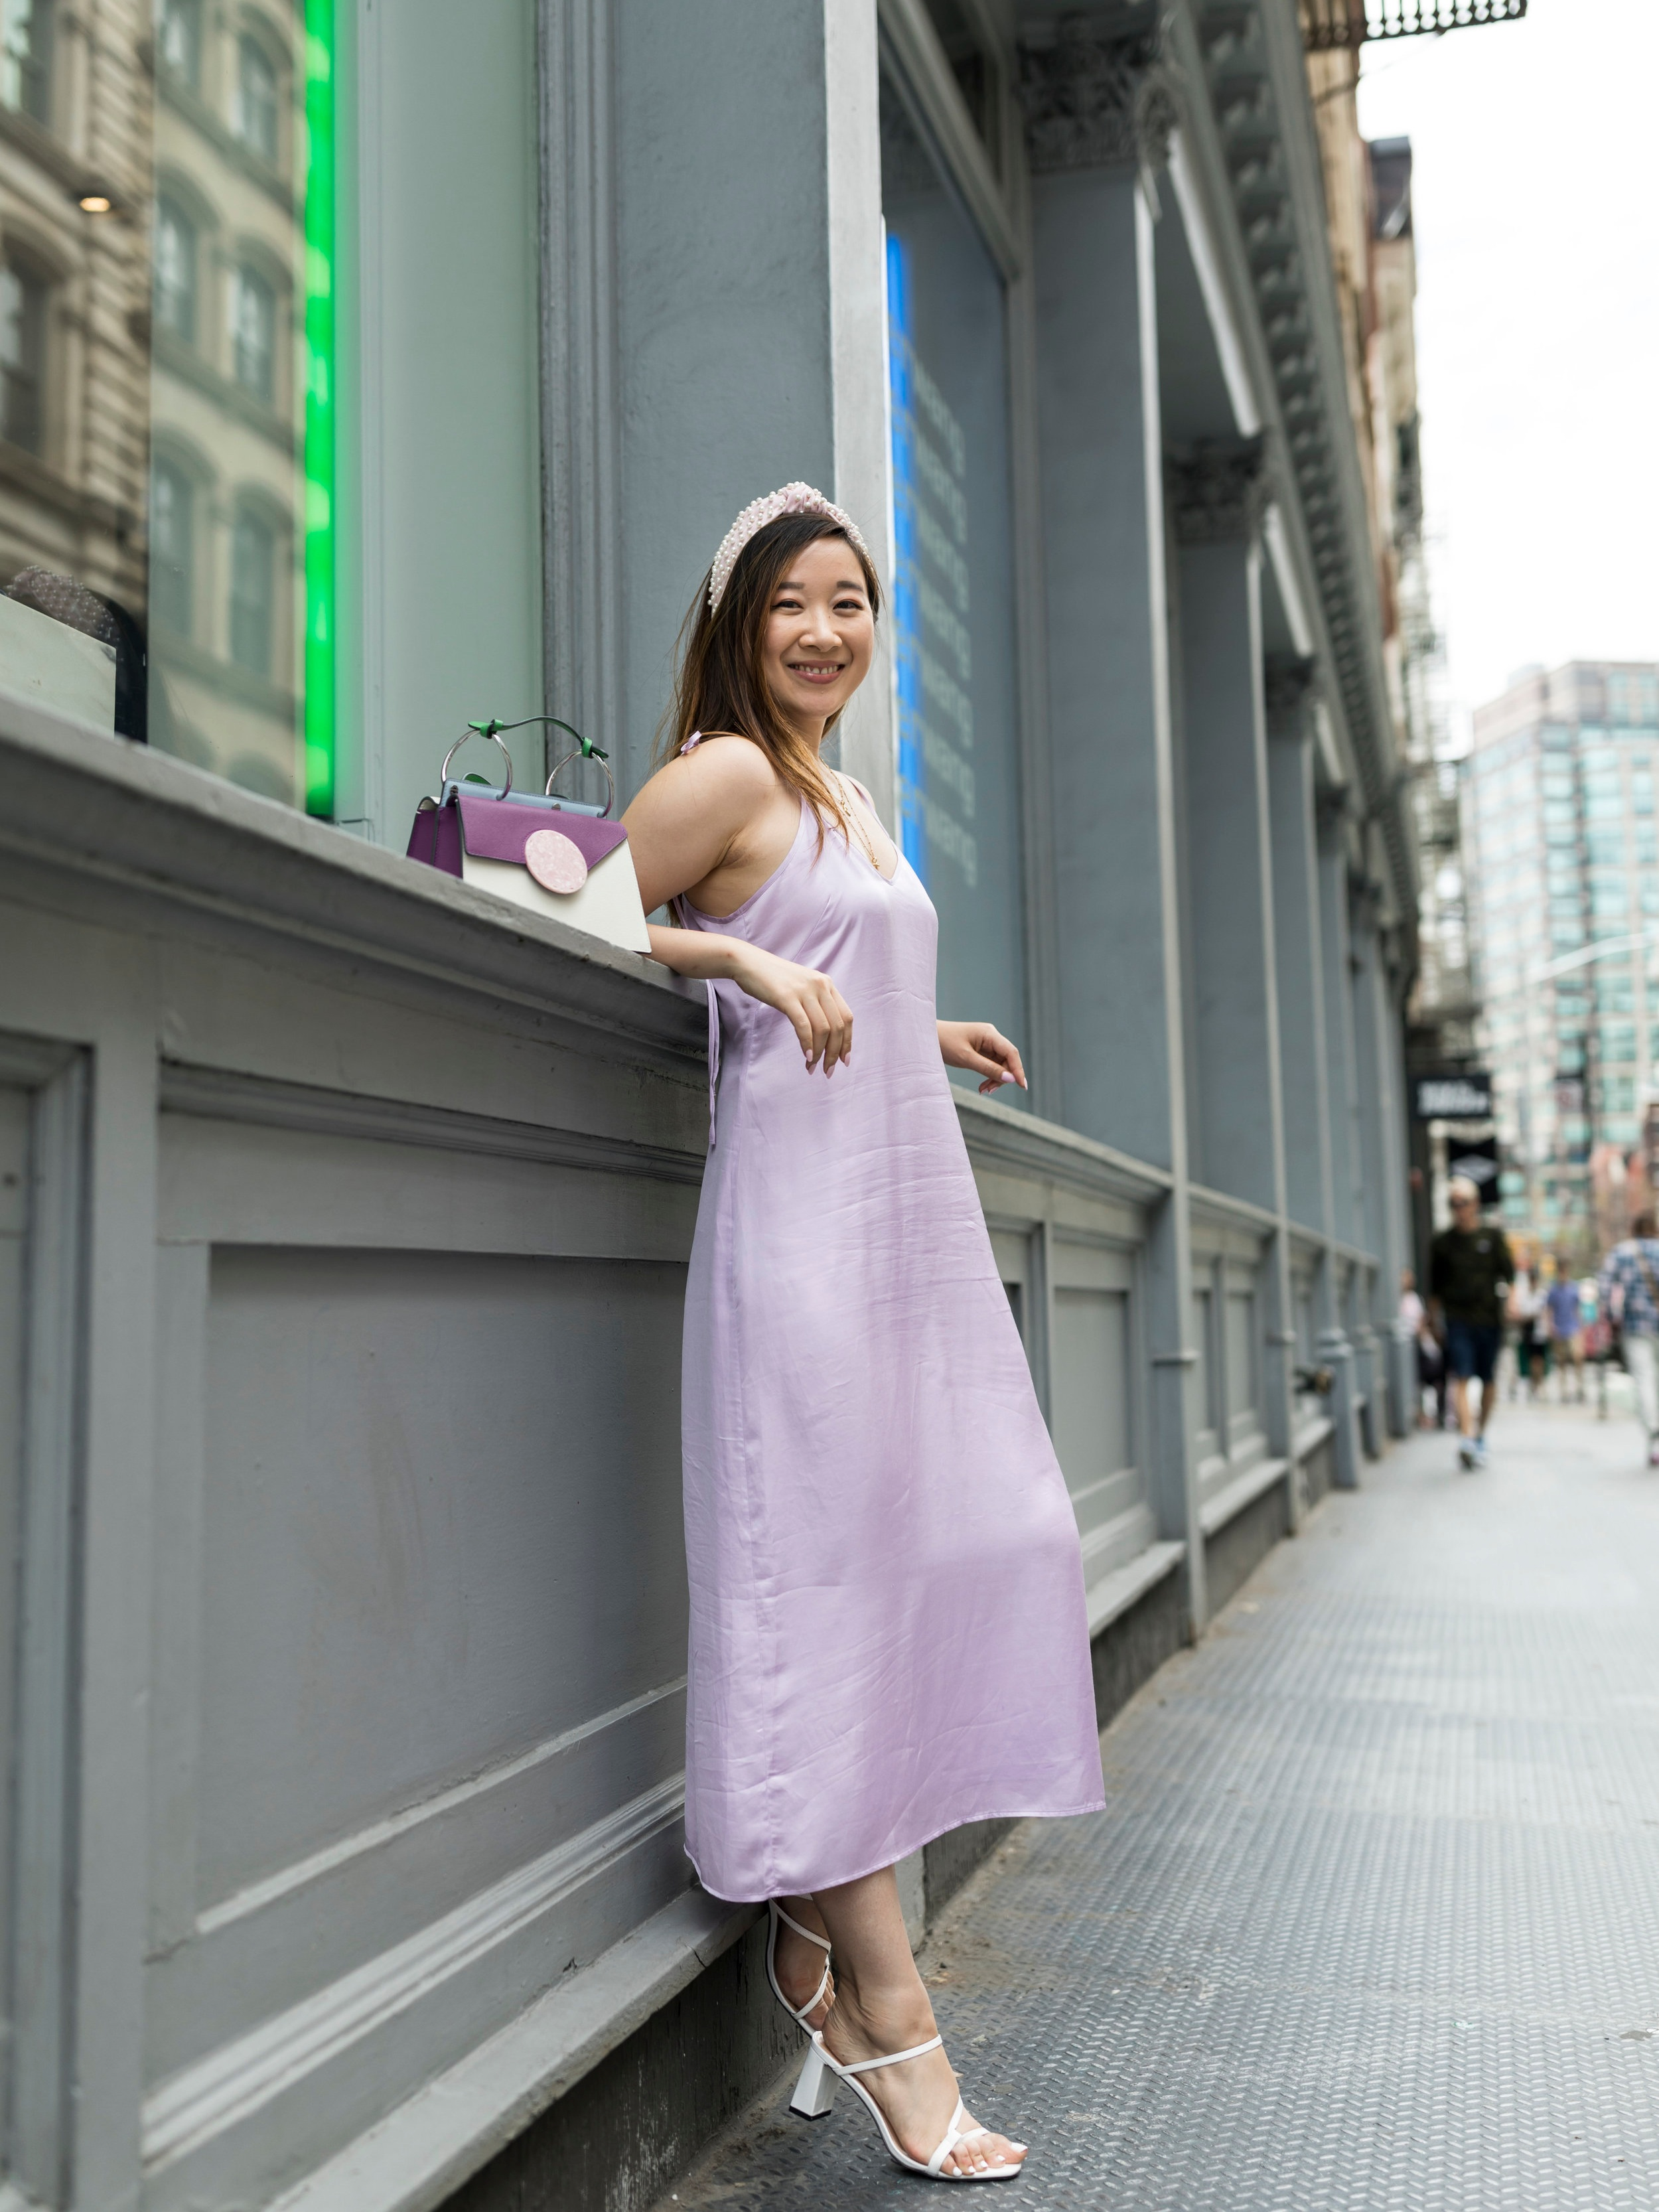 Wearing the lilac dress as it is. Photo by  Ashley Gallerani Photography .